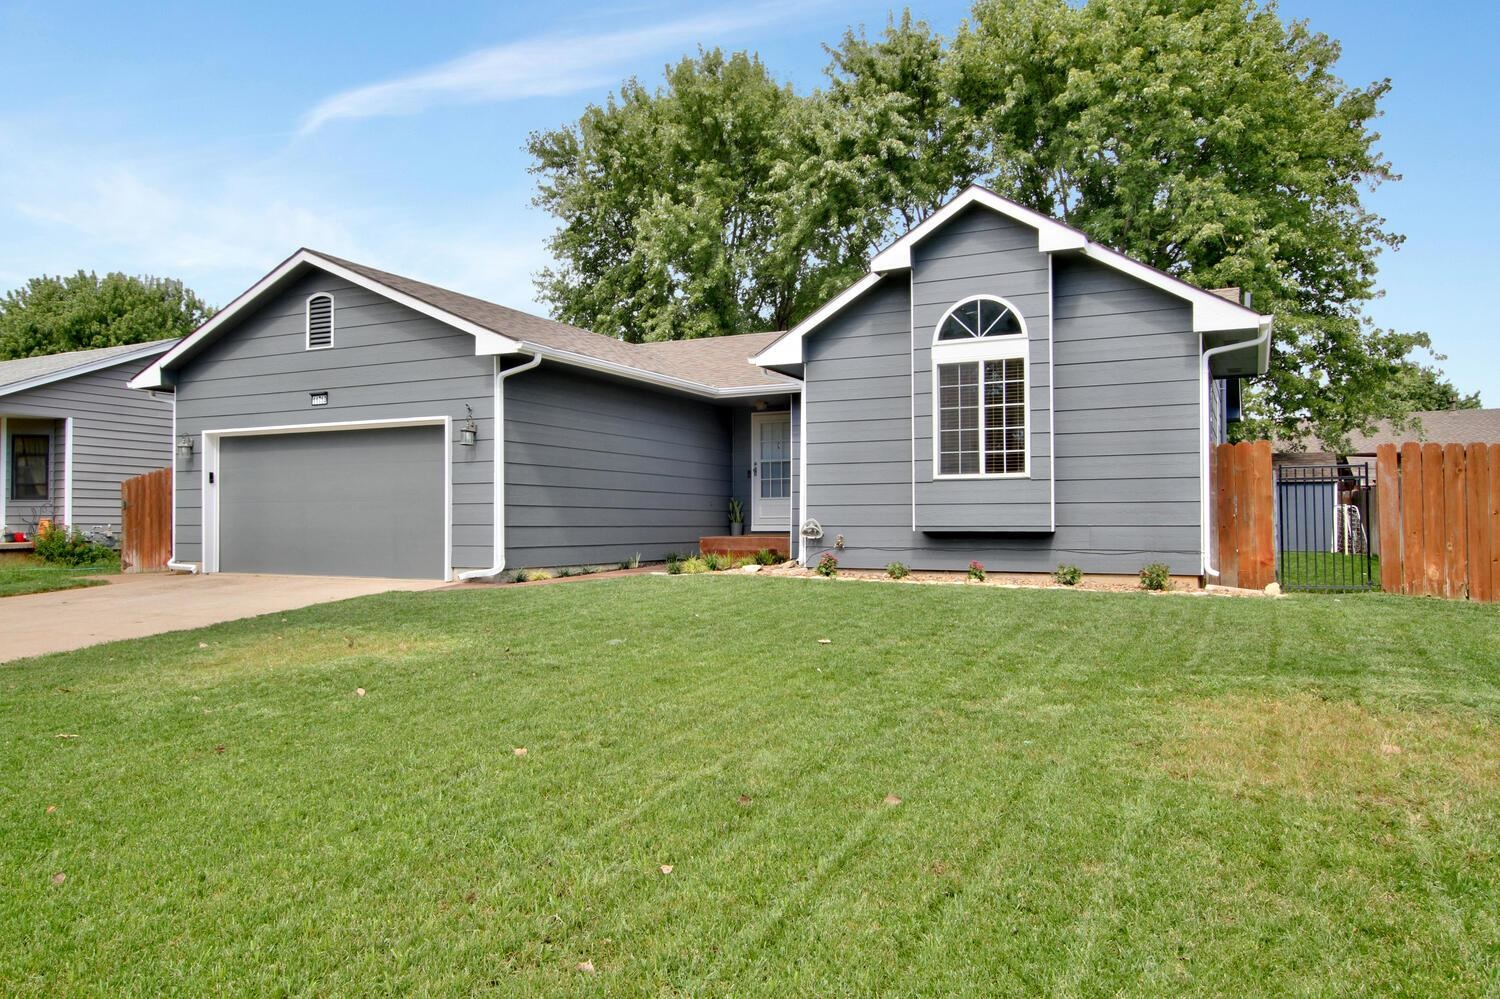 Looking for move-in ready?  Then look no further than this beautiful 4 bedroom 3 bath house located